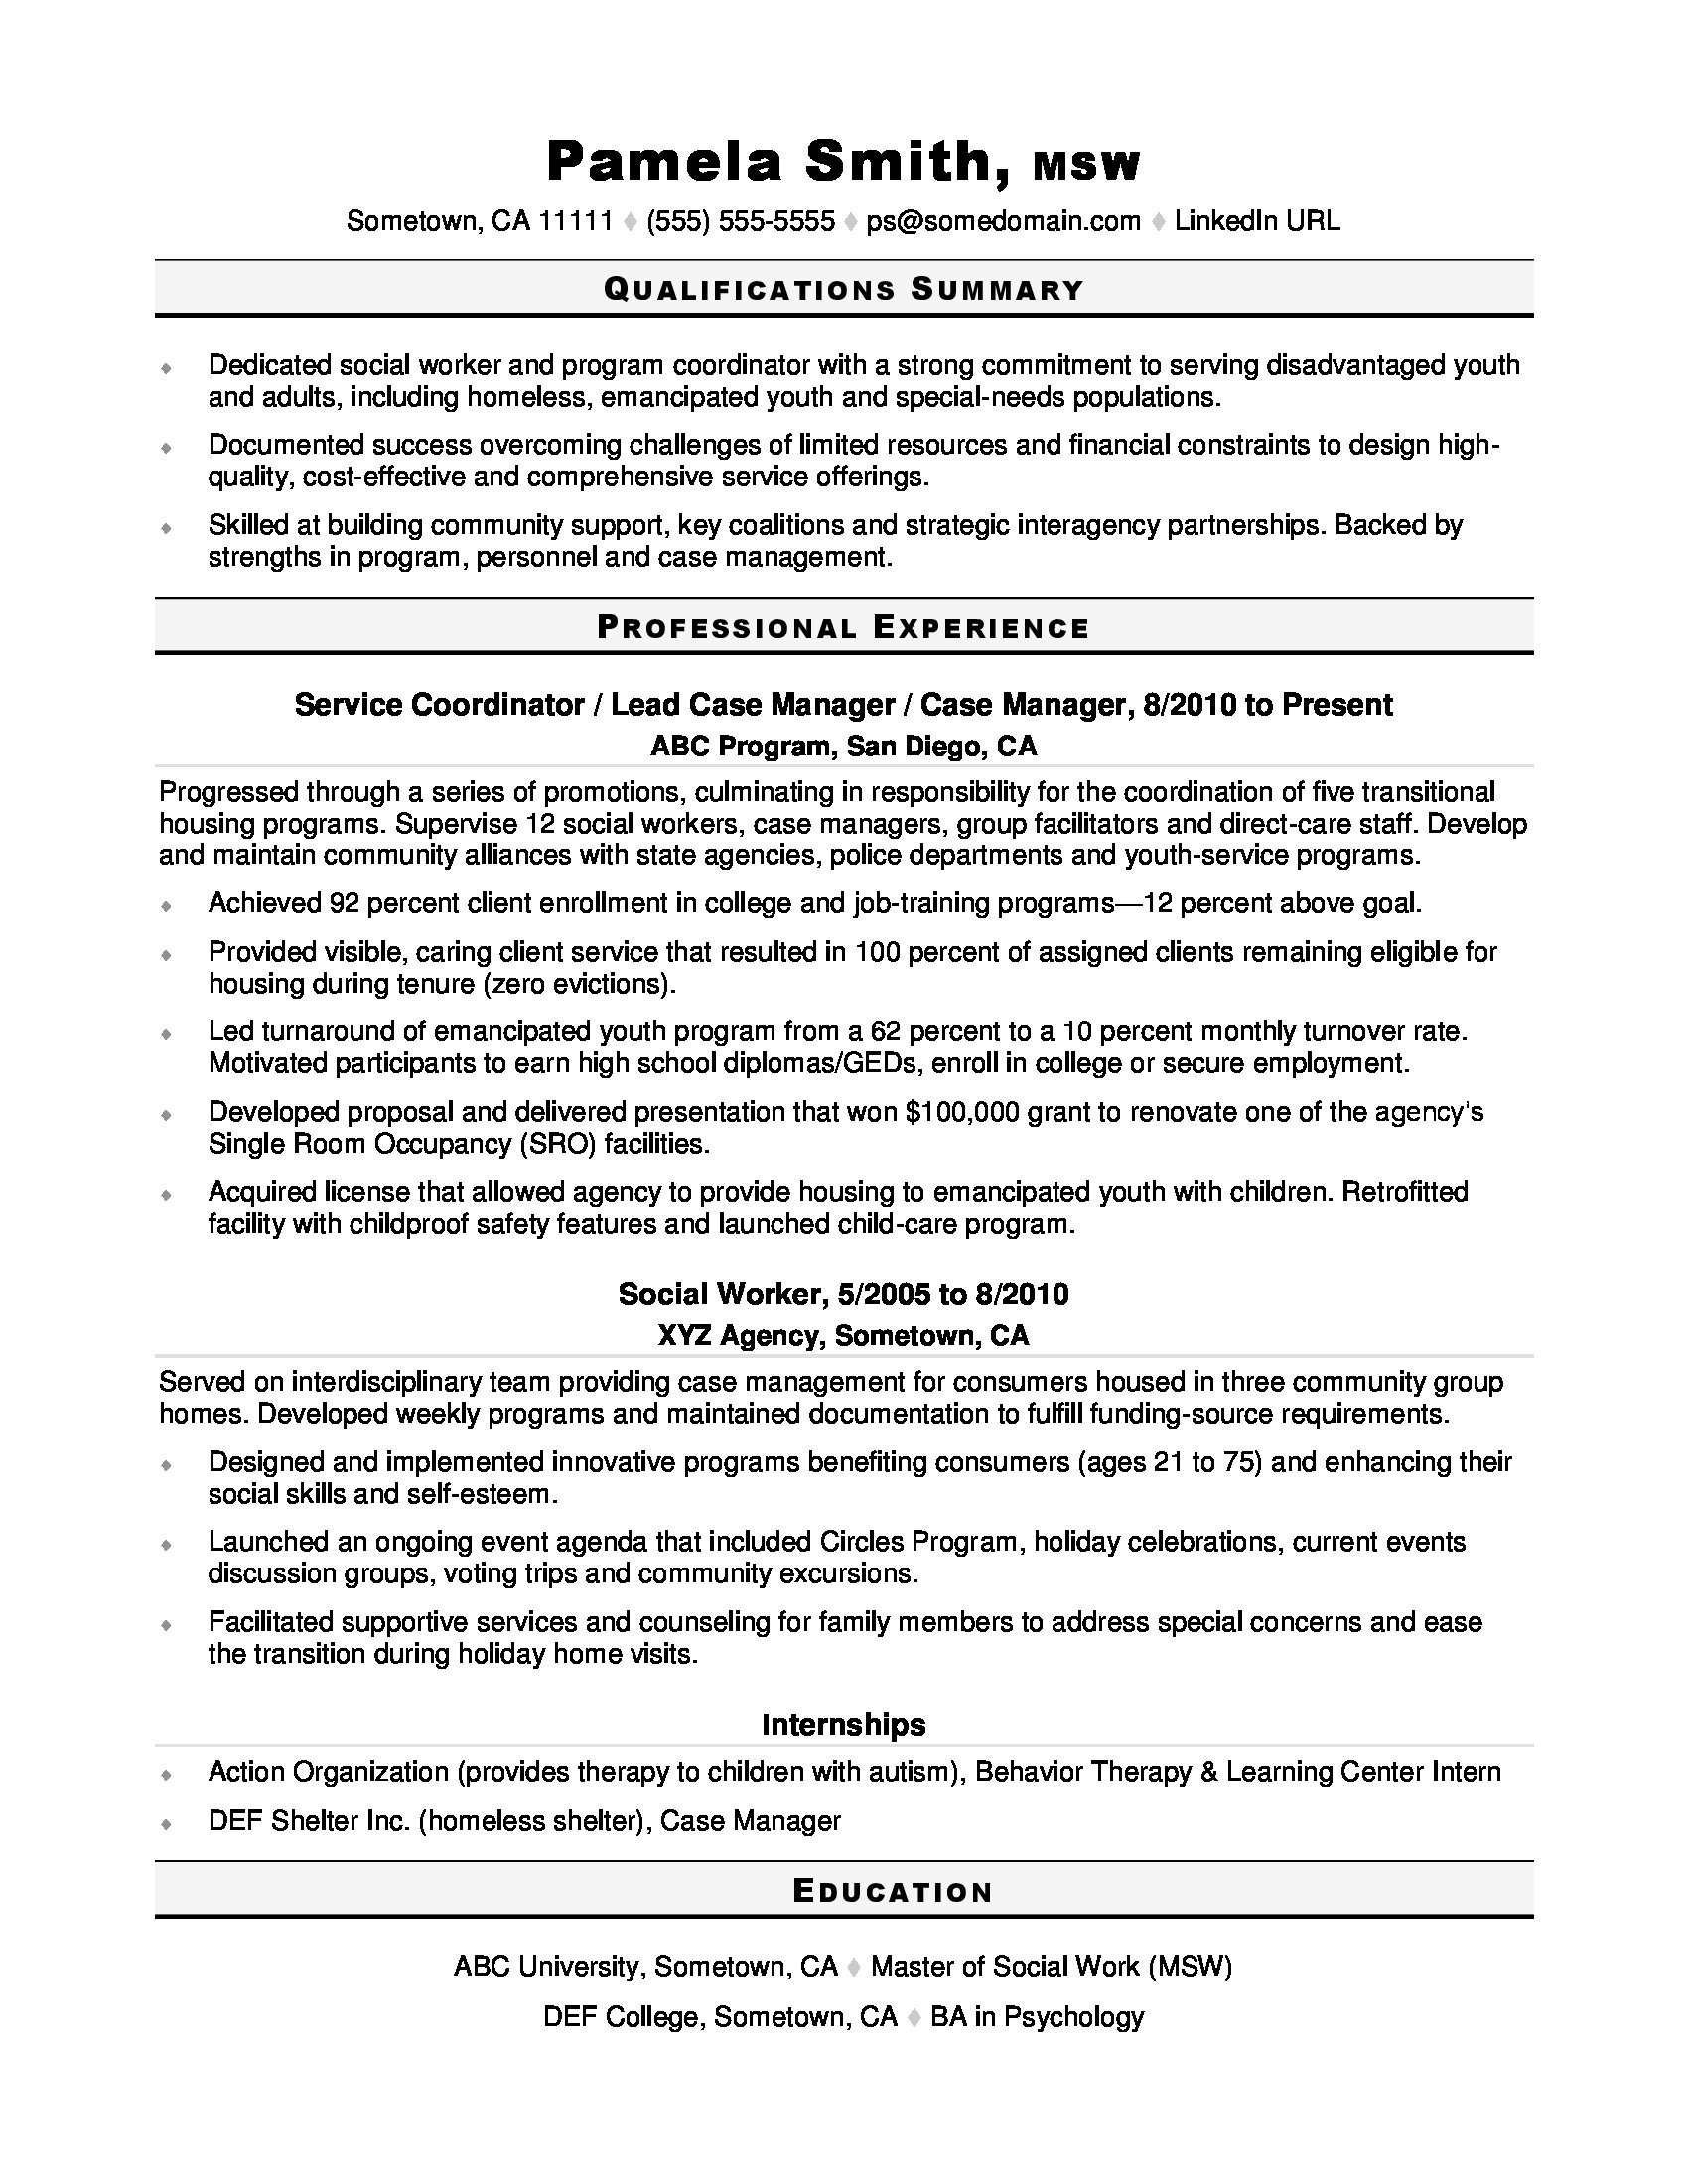 Medical Social Worker Objective Resume